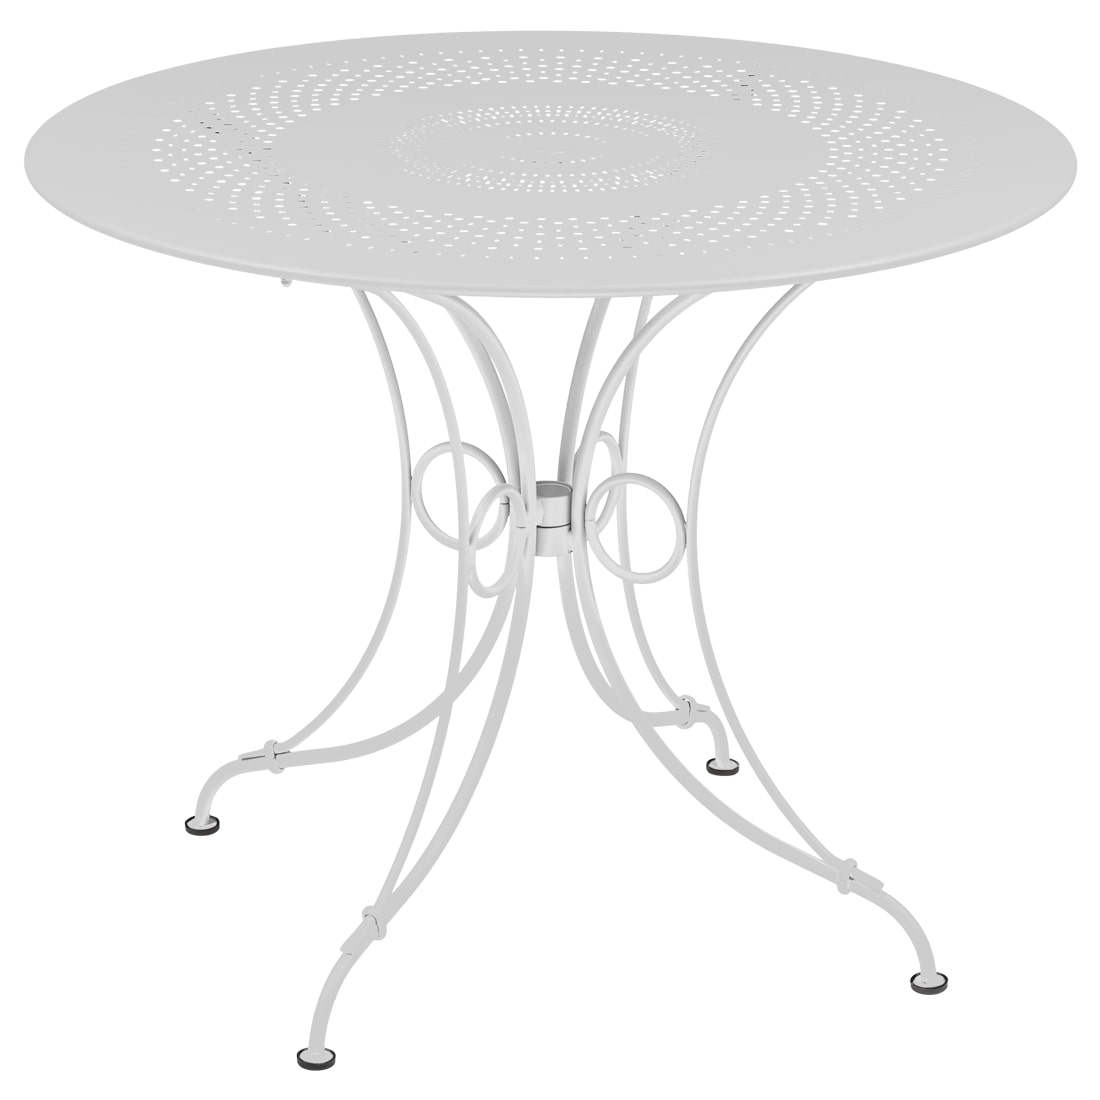 FERMOB | 1900 | Round Table 96cm Dia | 24 colour options | Made for you - Available in 4-6 weeks